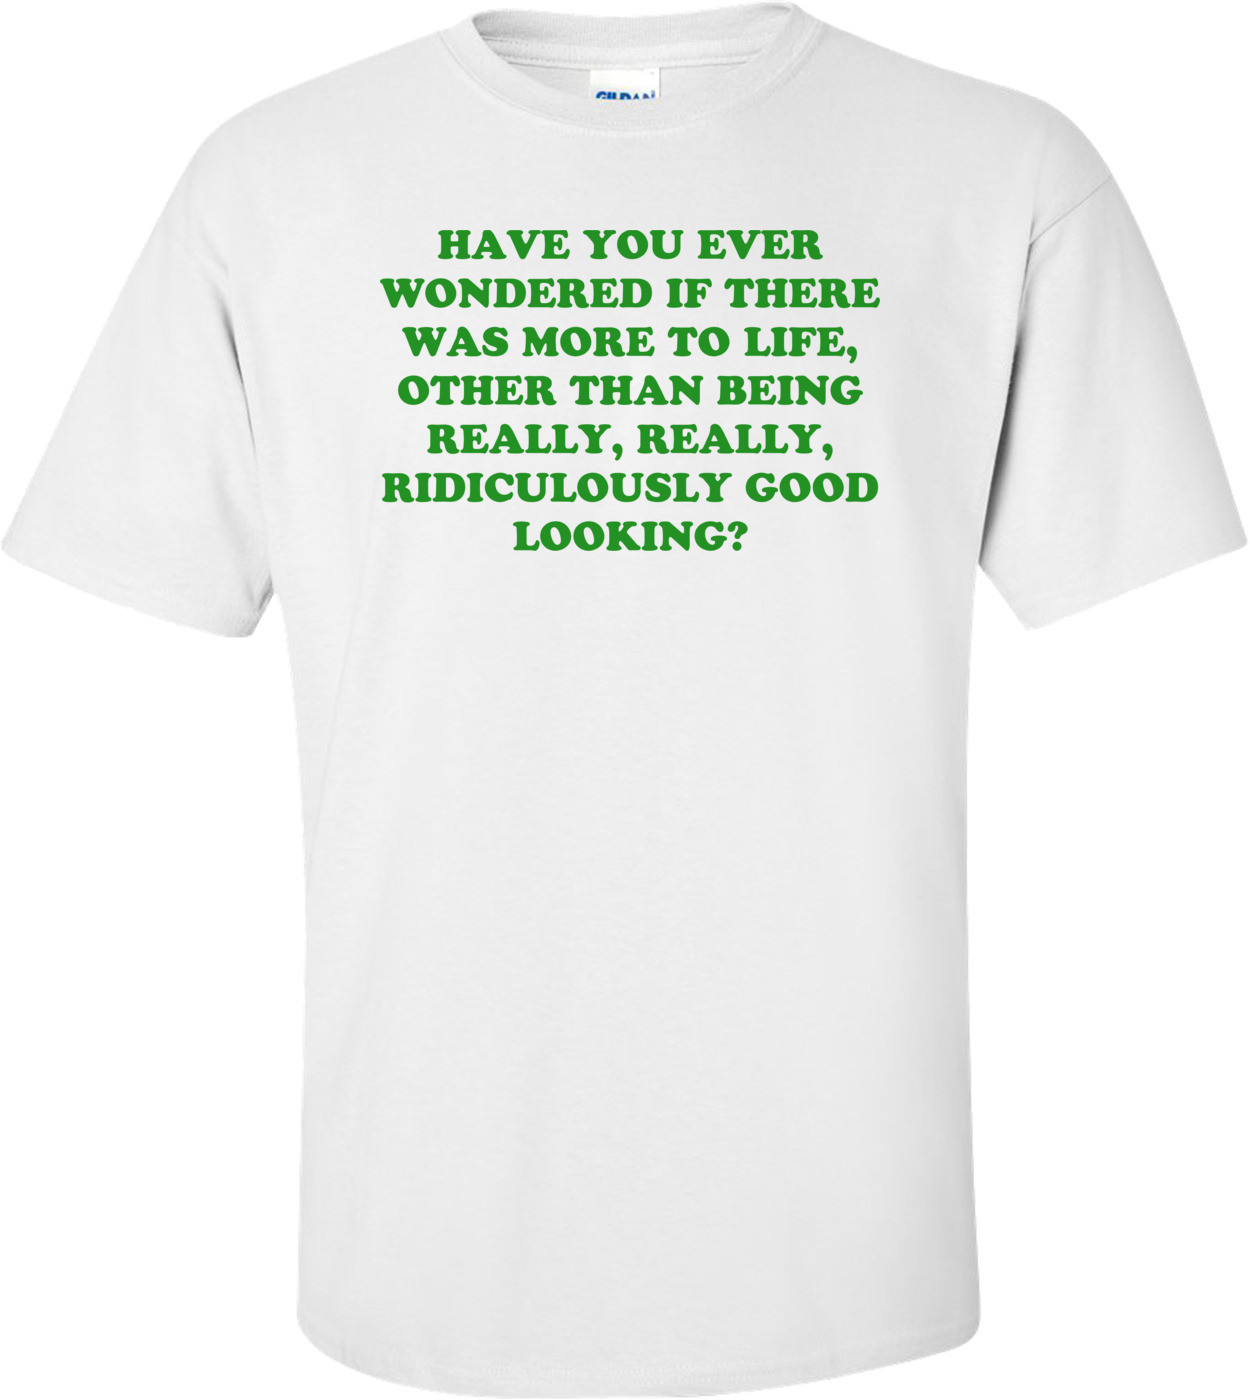 HAVE YOU EVER WONDERED IF THERE WAS MORE TO LIFE, OTHER THAN BEING REALLY, REALLY, RIDICULOUSLY GOOD LOOKING? Shirt